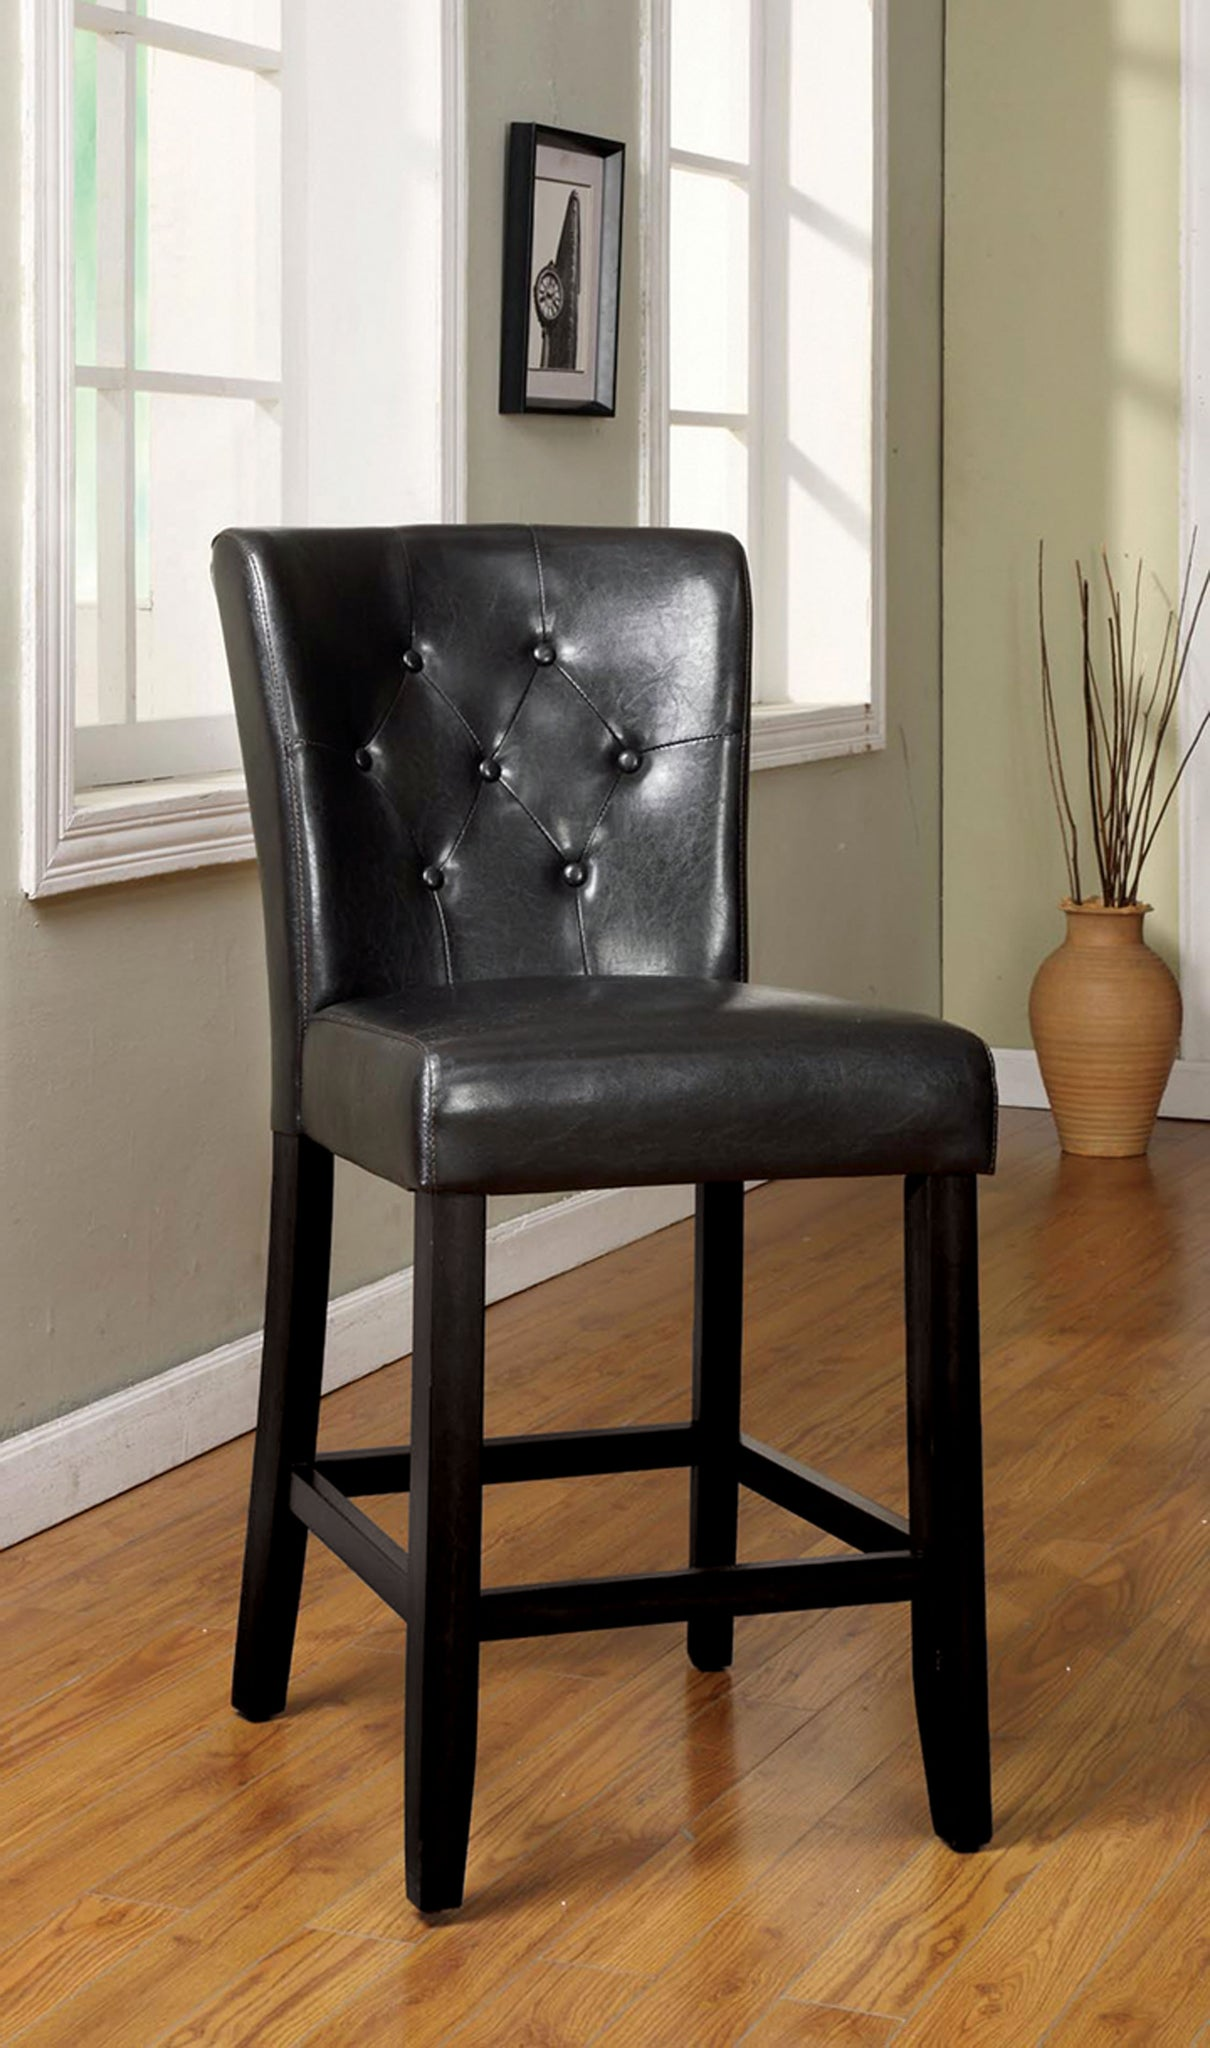 Isley Contemporary Counter Height Chair, Black